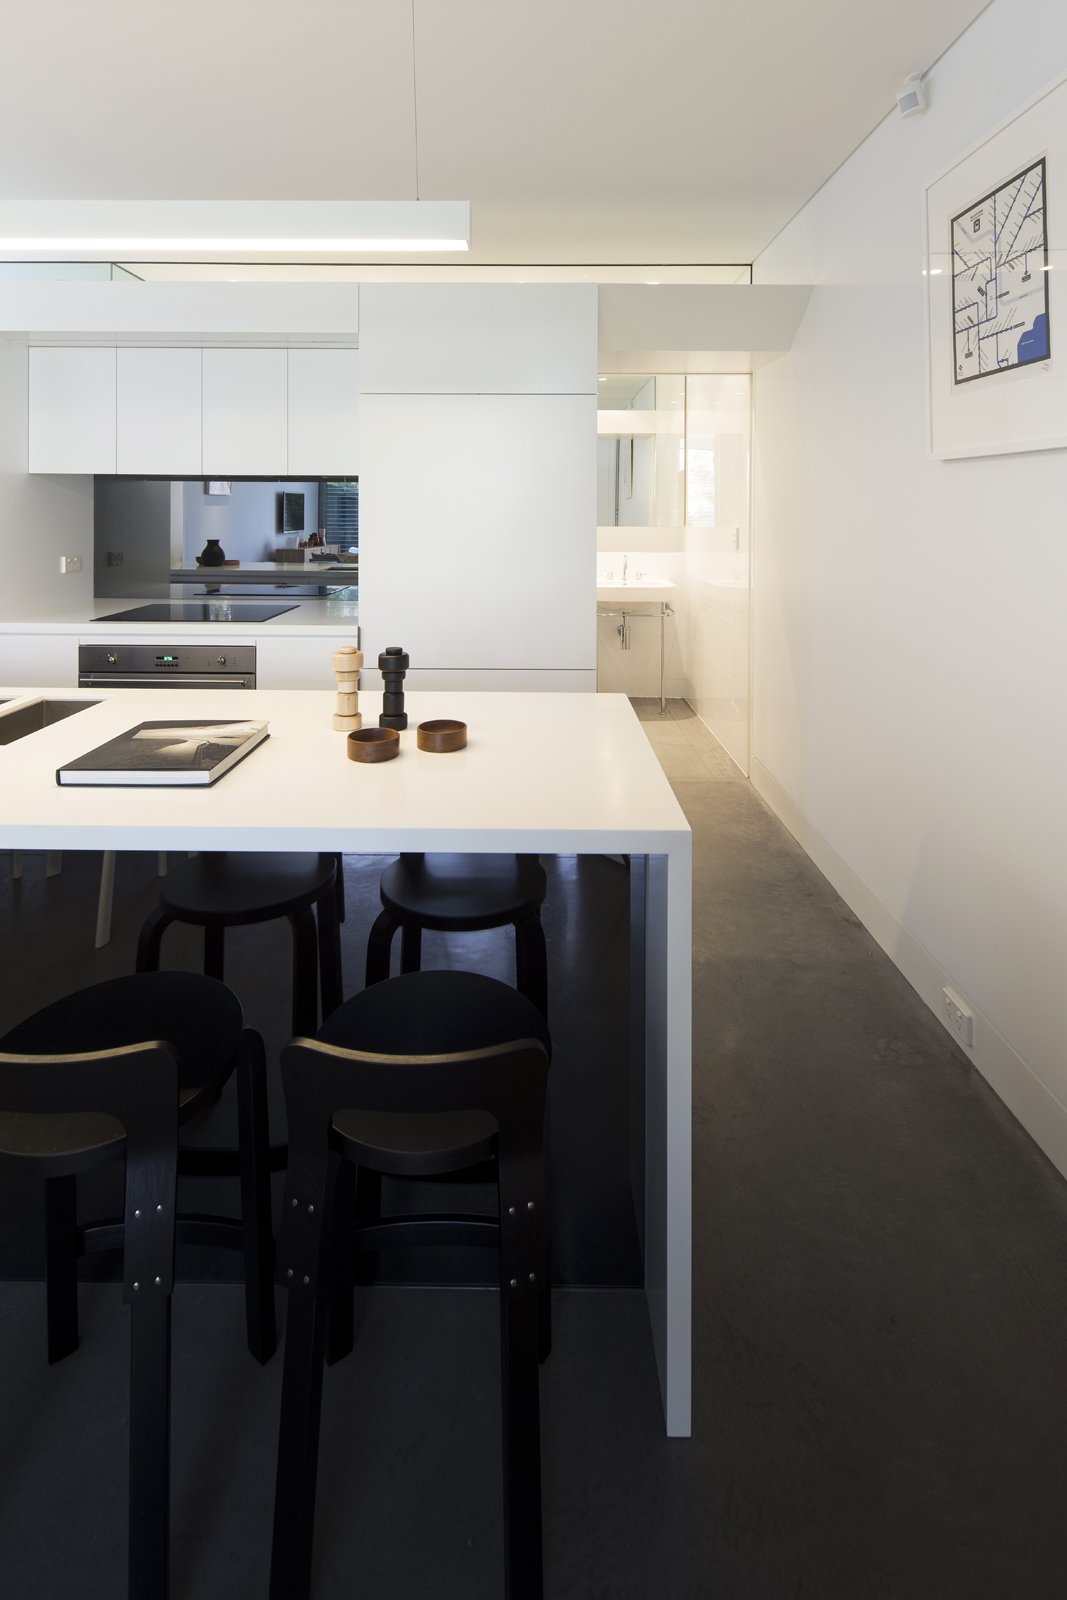 Casual meals are eaten at the kitchen's glacier white Corian countertop, which features Aalto K65 stools. The island's Blanco sinks offer a direct, uninterrupted sightline to the garden.  Cosgriff House from Renovation Near Sydney Opens Home Onto a Lush Garden